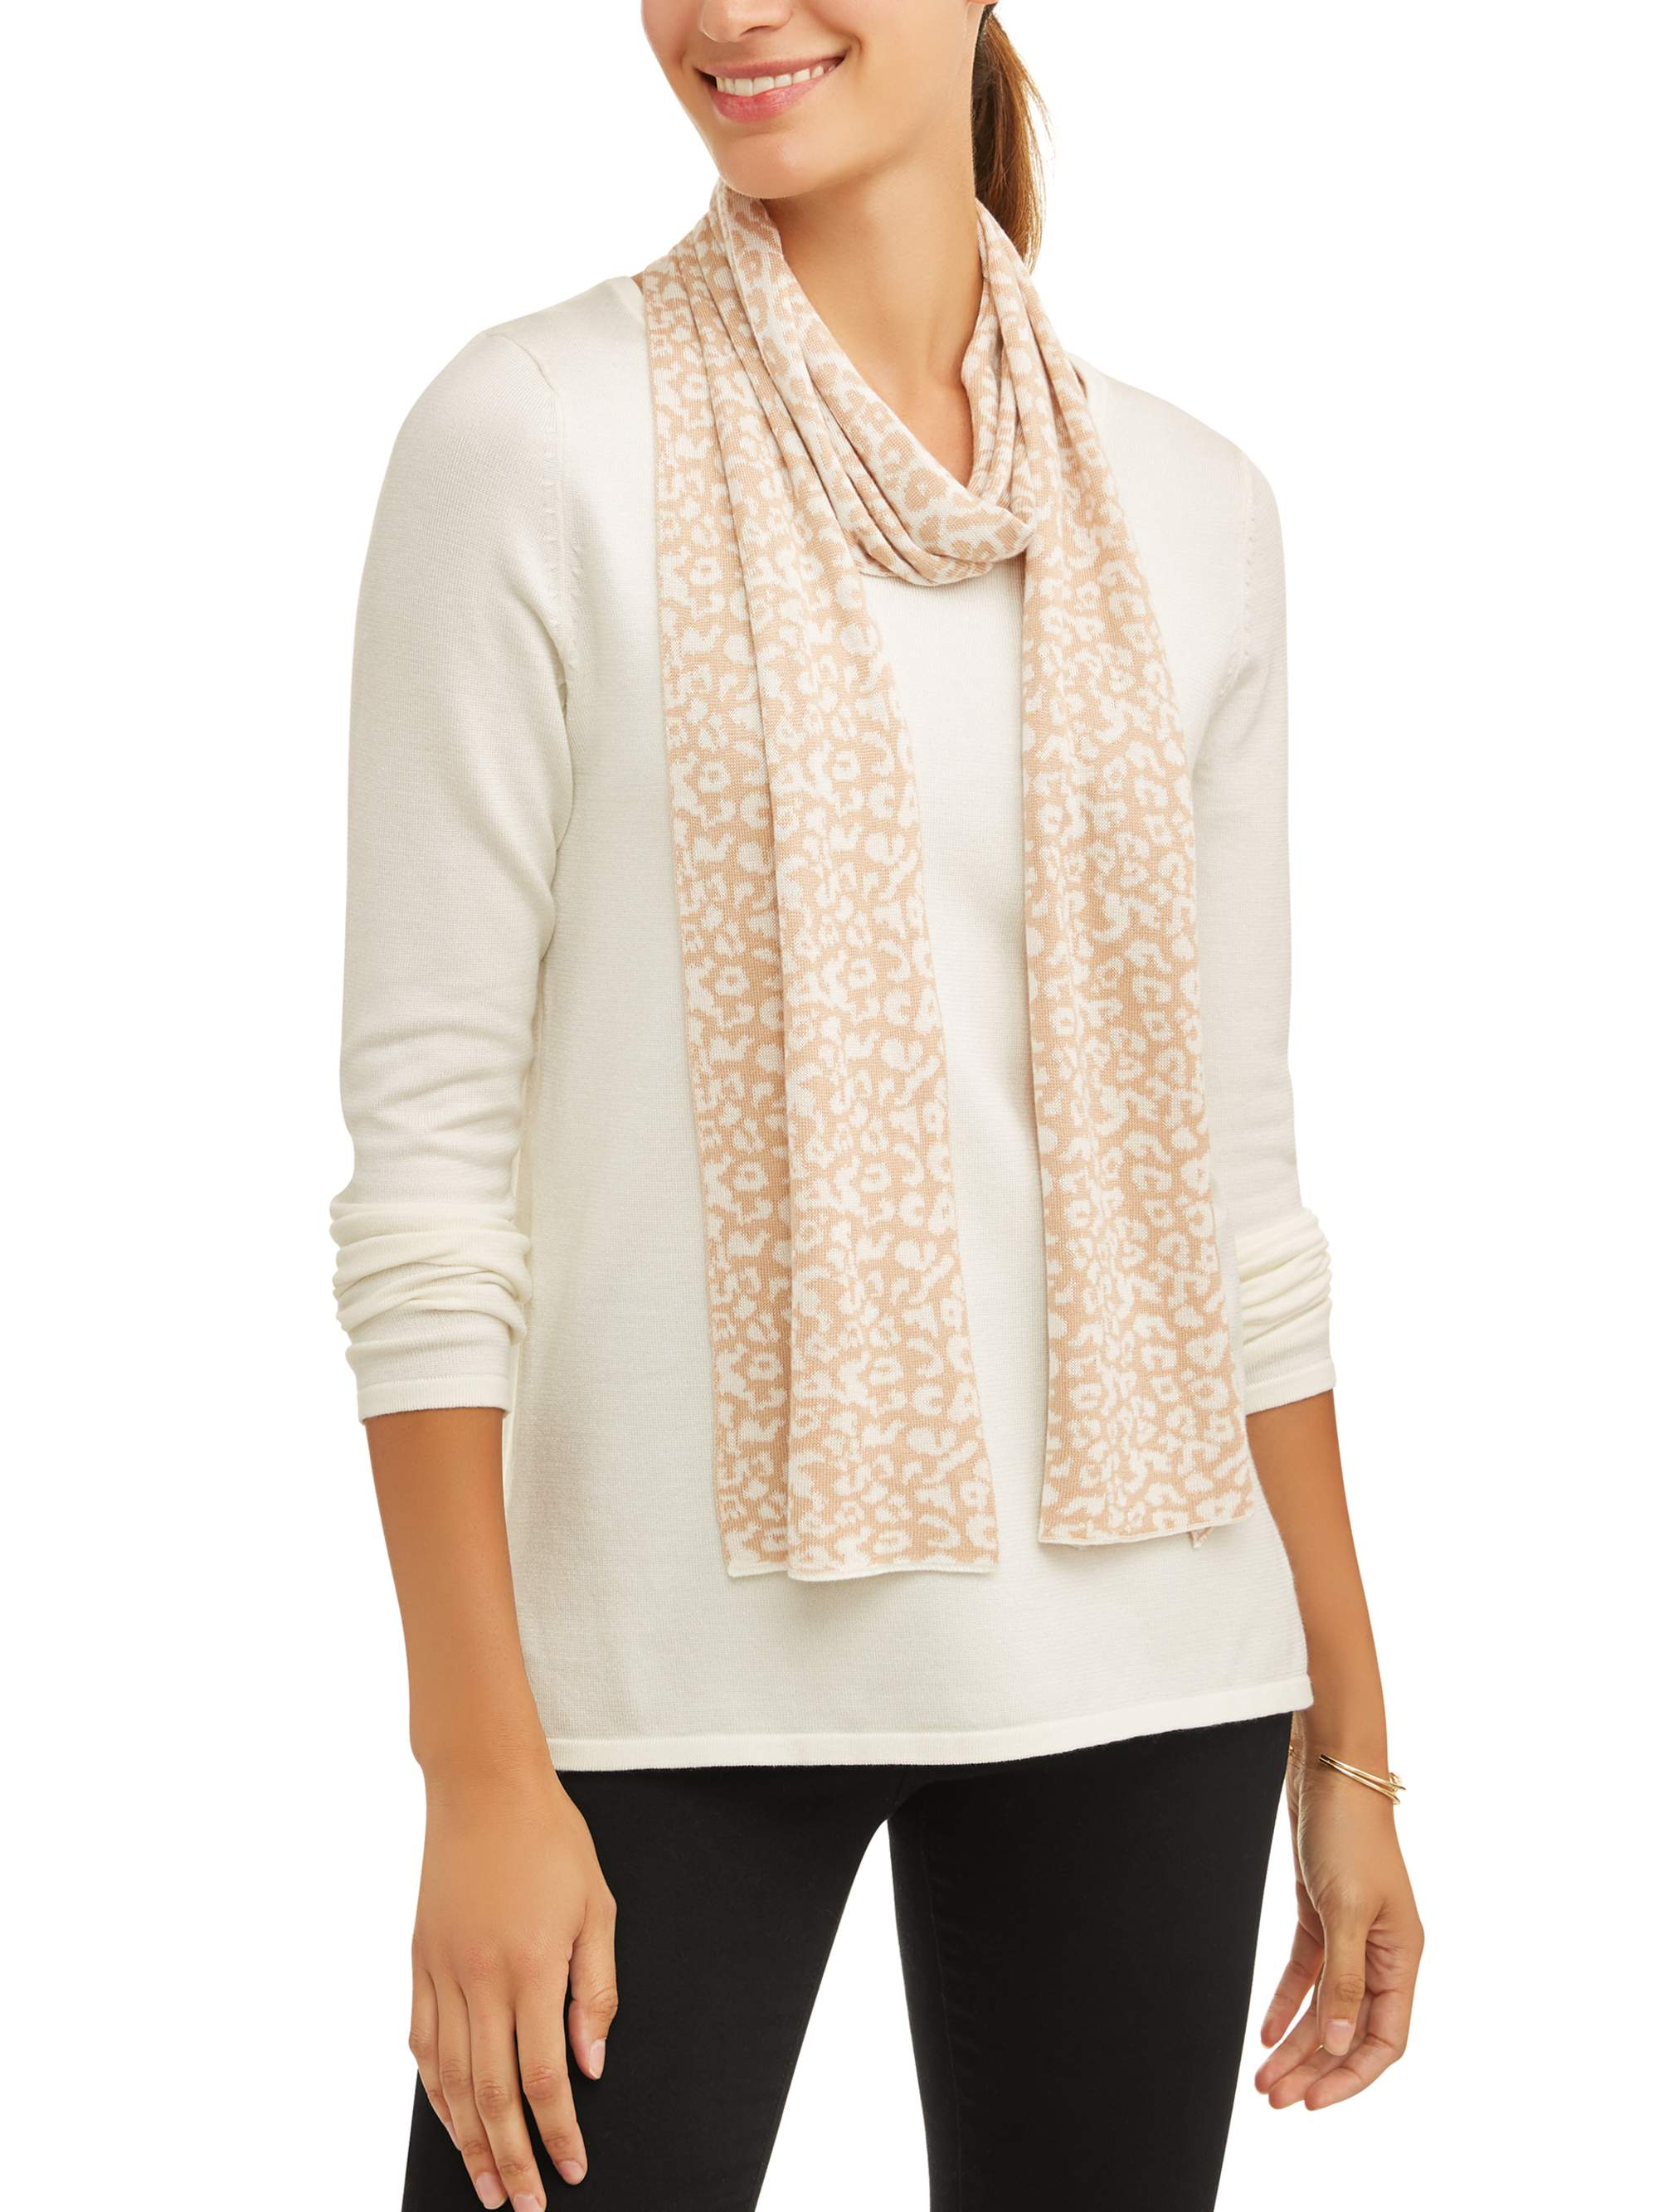 Women's 2fer Sweater with Scarf